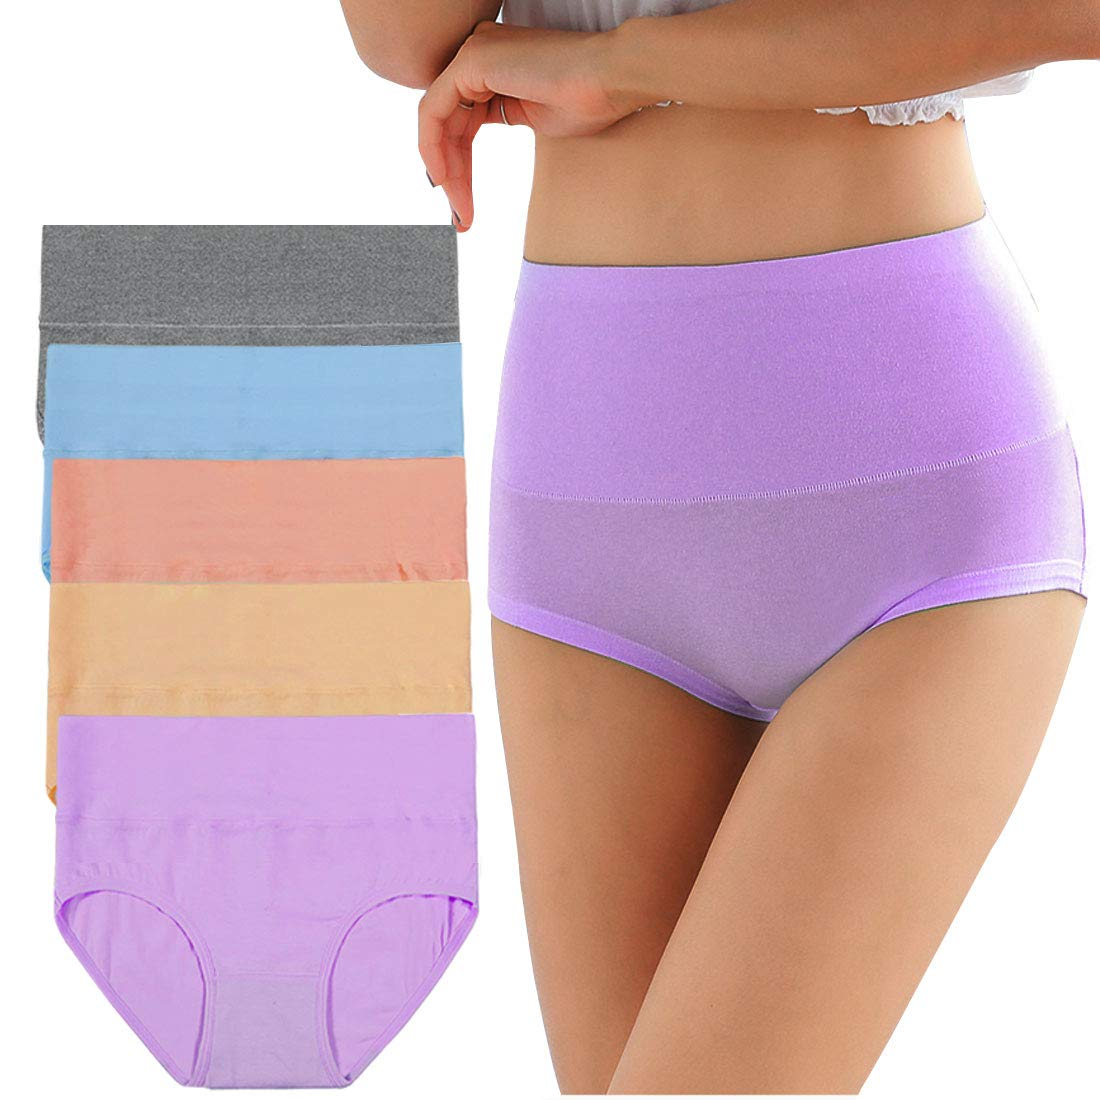 ab6068f4e39d OLIKEME Women's Cotton Underwear,5 Pack Seamless Breathable Solid  Comfortable High Waist Soft Briefs Panties ...